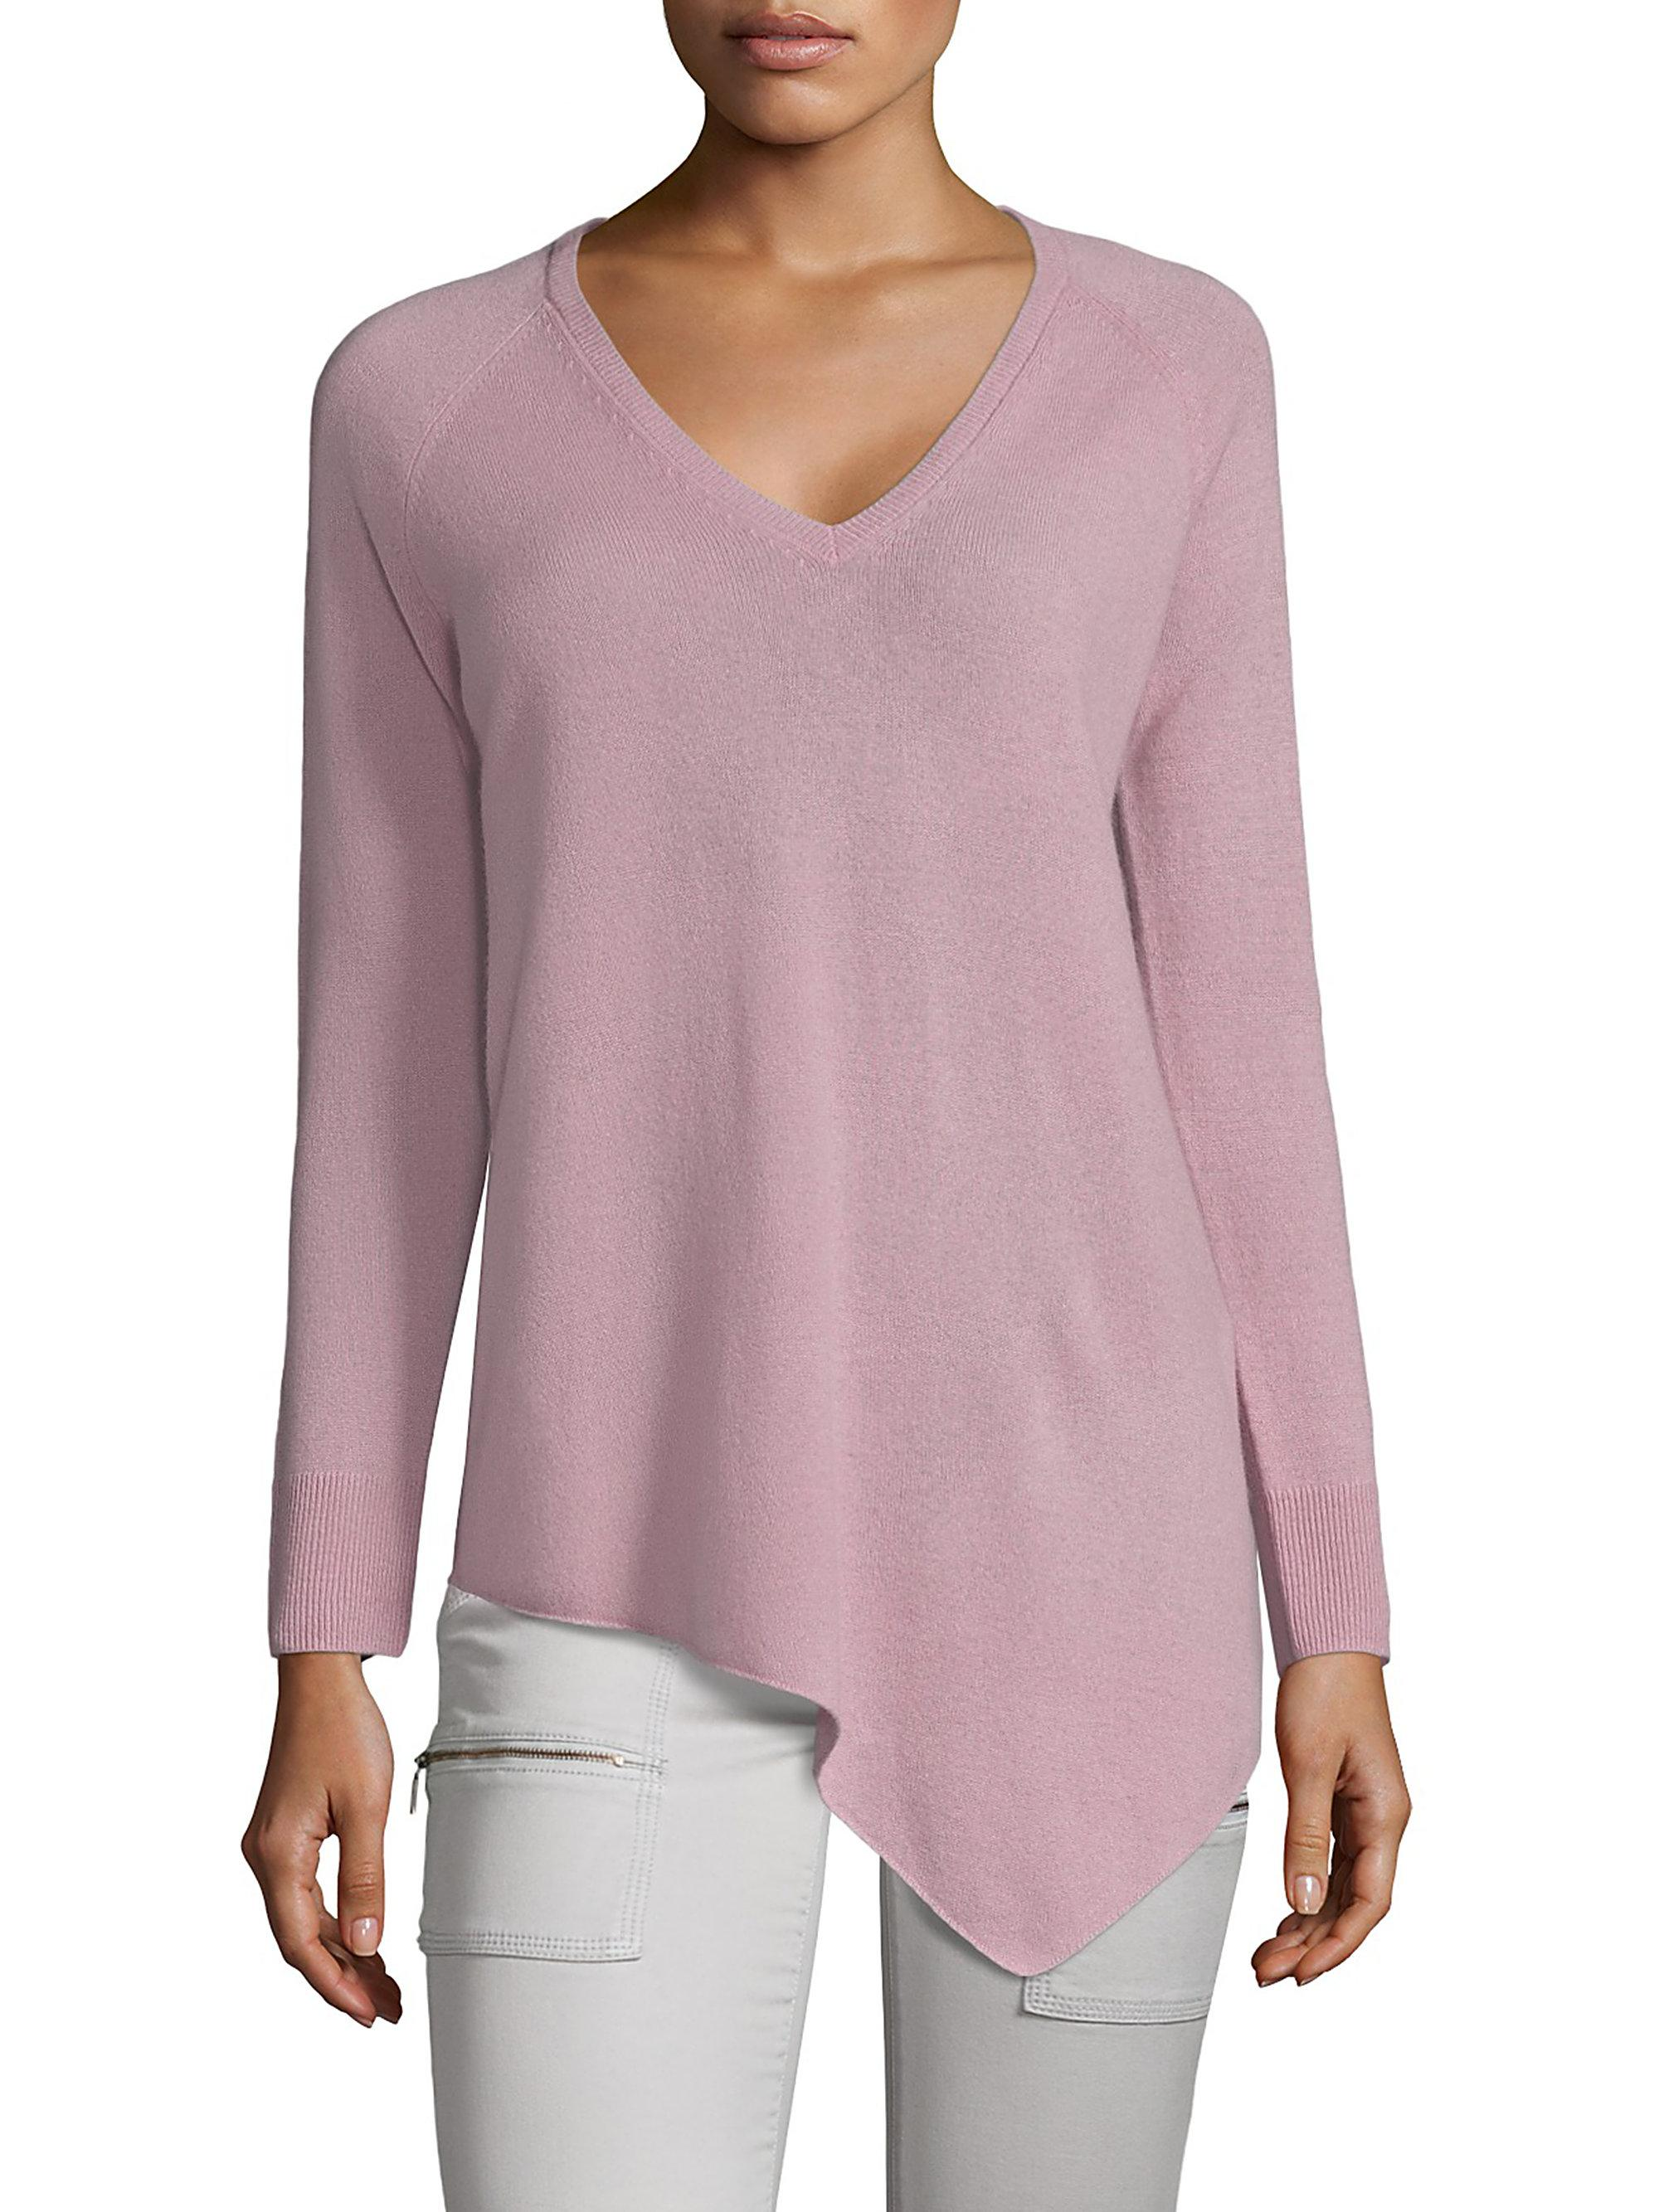 Joie Woman Shatoria Asymmetric Cashmere Sweater Lilac Size XS Joie Discount Websites Sale Hot Sale Cheap Real Finishline Big Sale Discount Pay With Visa 7A1NK7